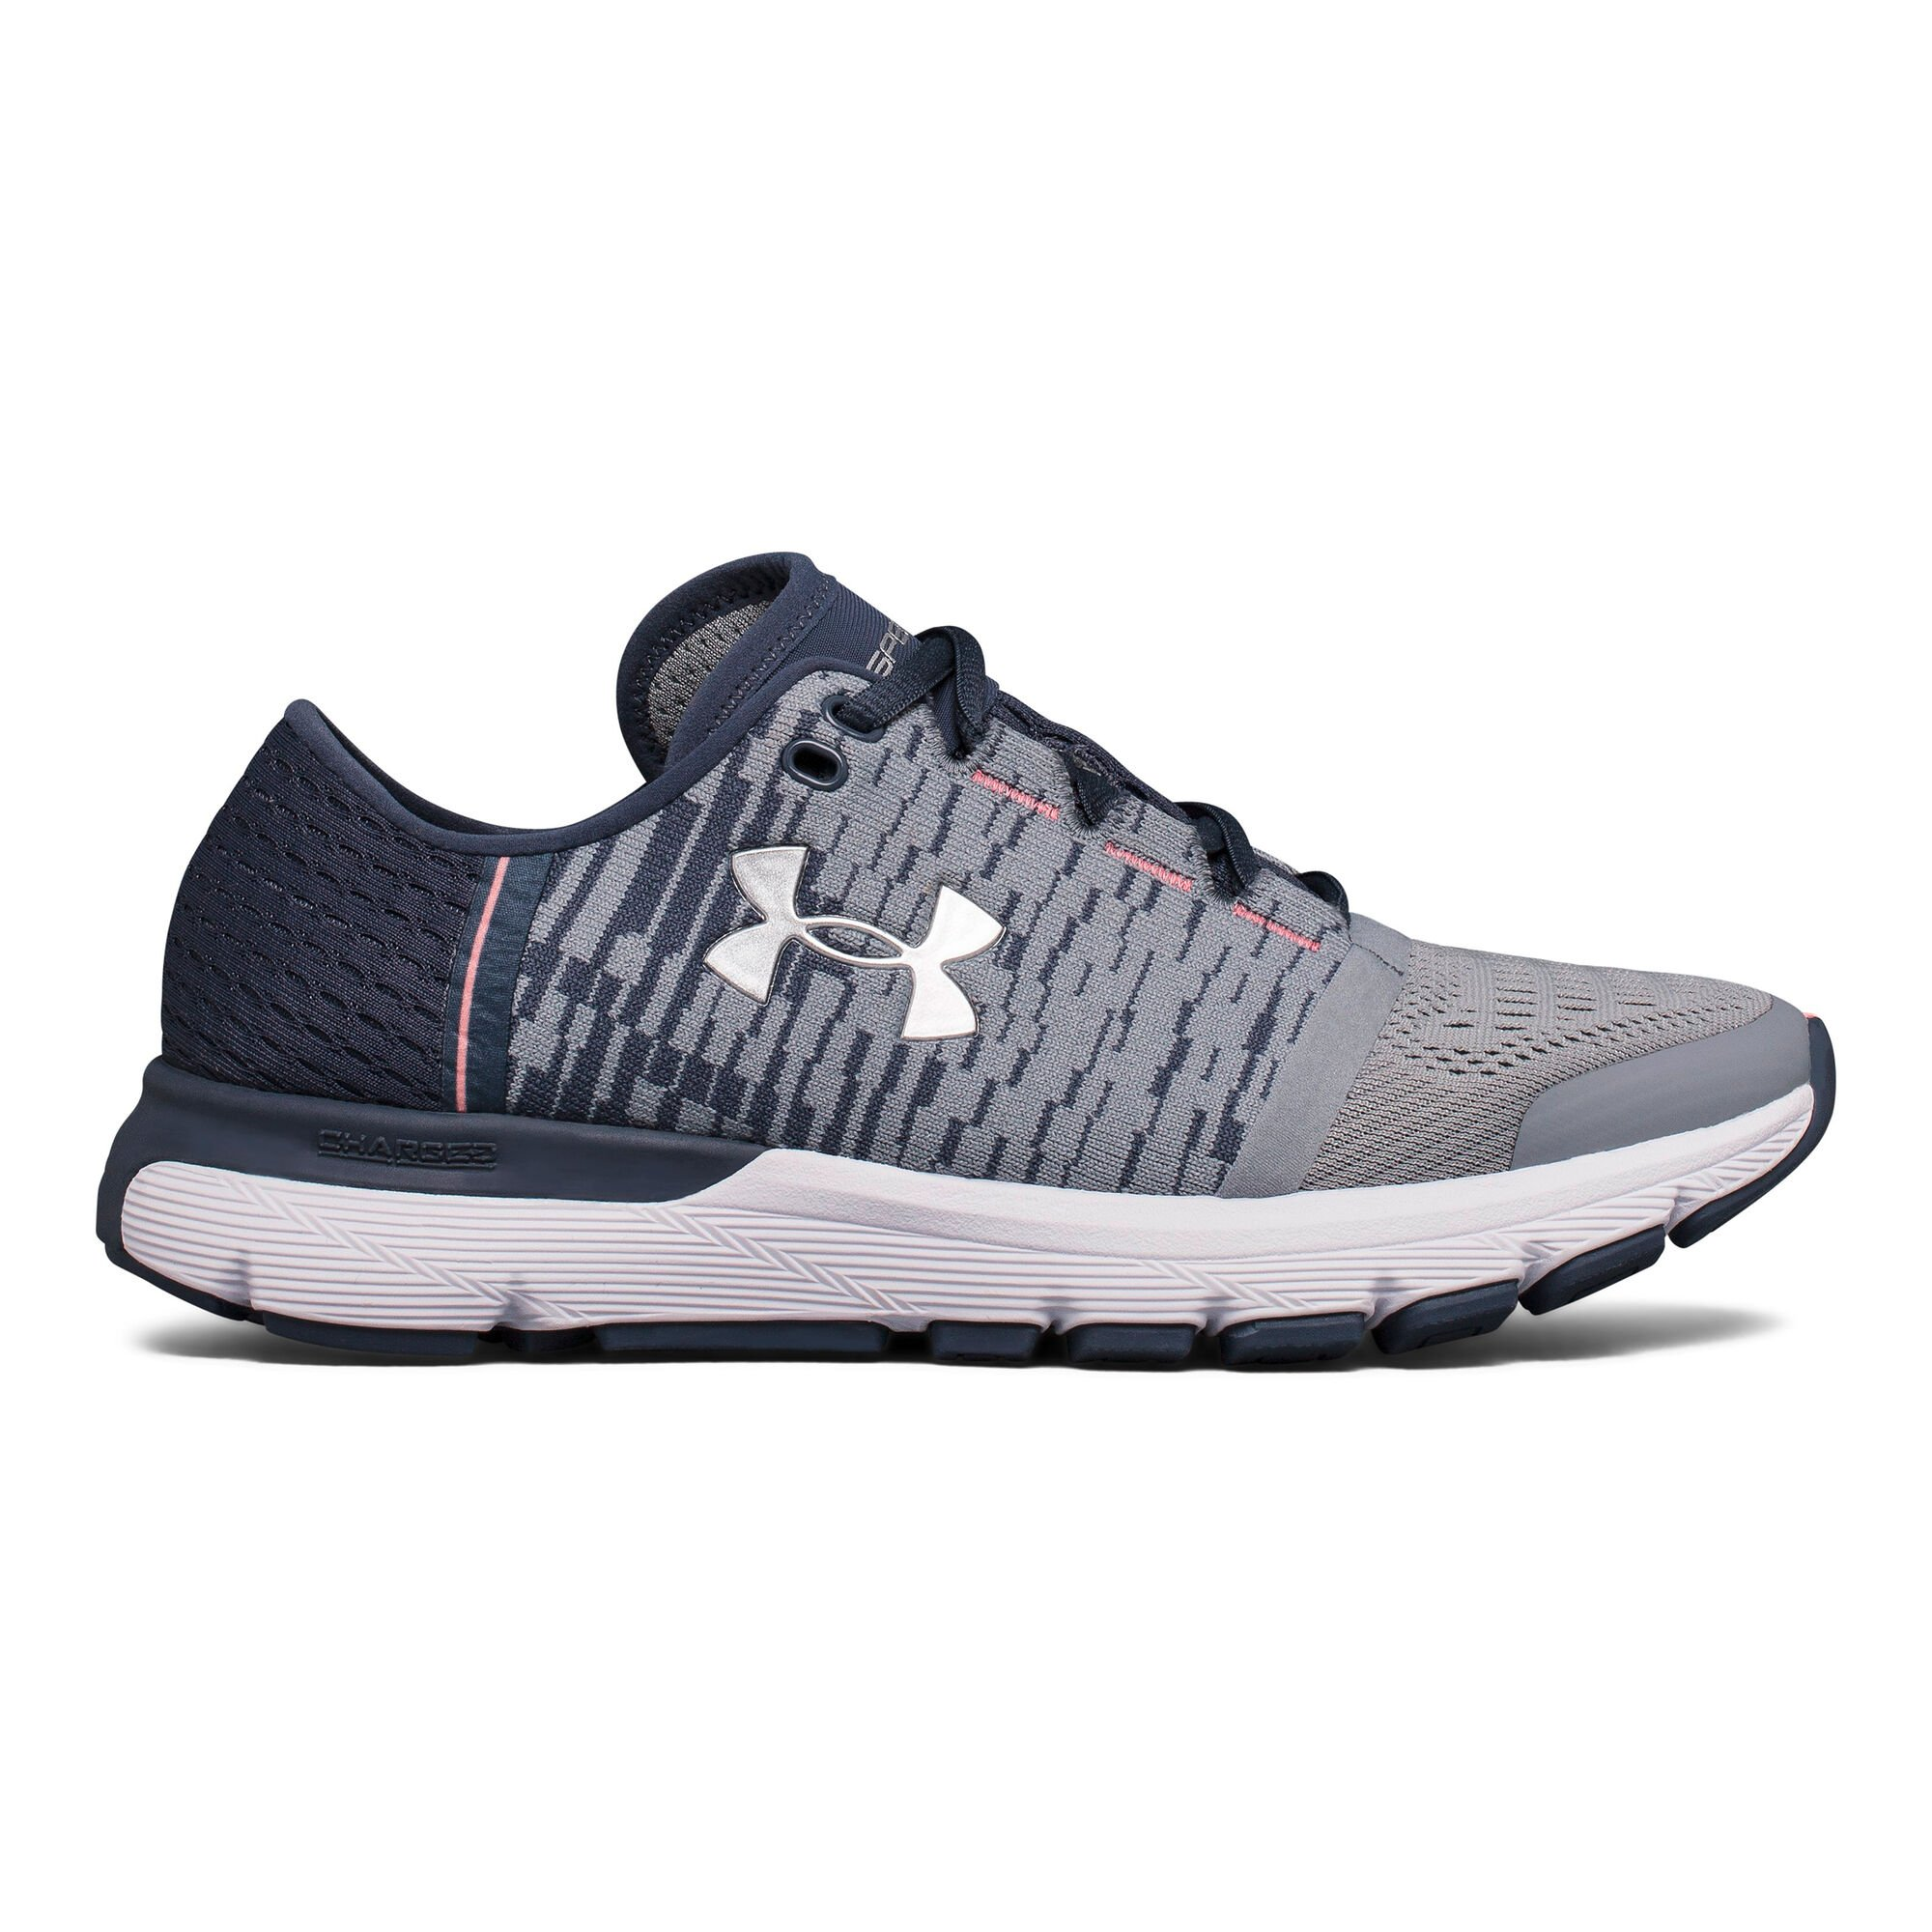 fbd68489ea45b2 Under Armour Speedform Gemini 3 GR Zapatilla De Entrenamiento ...